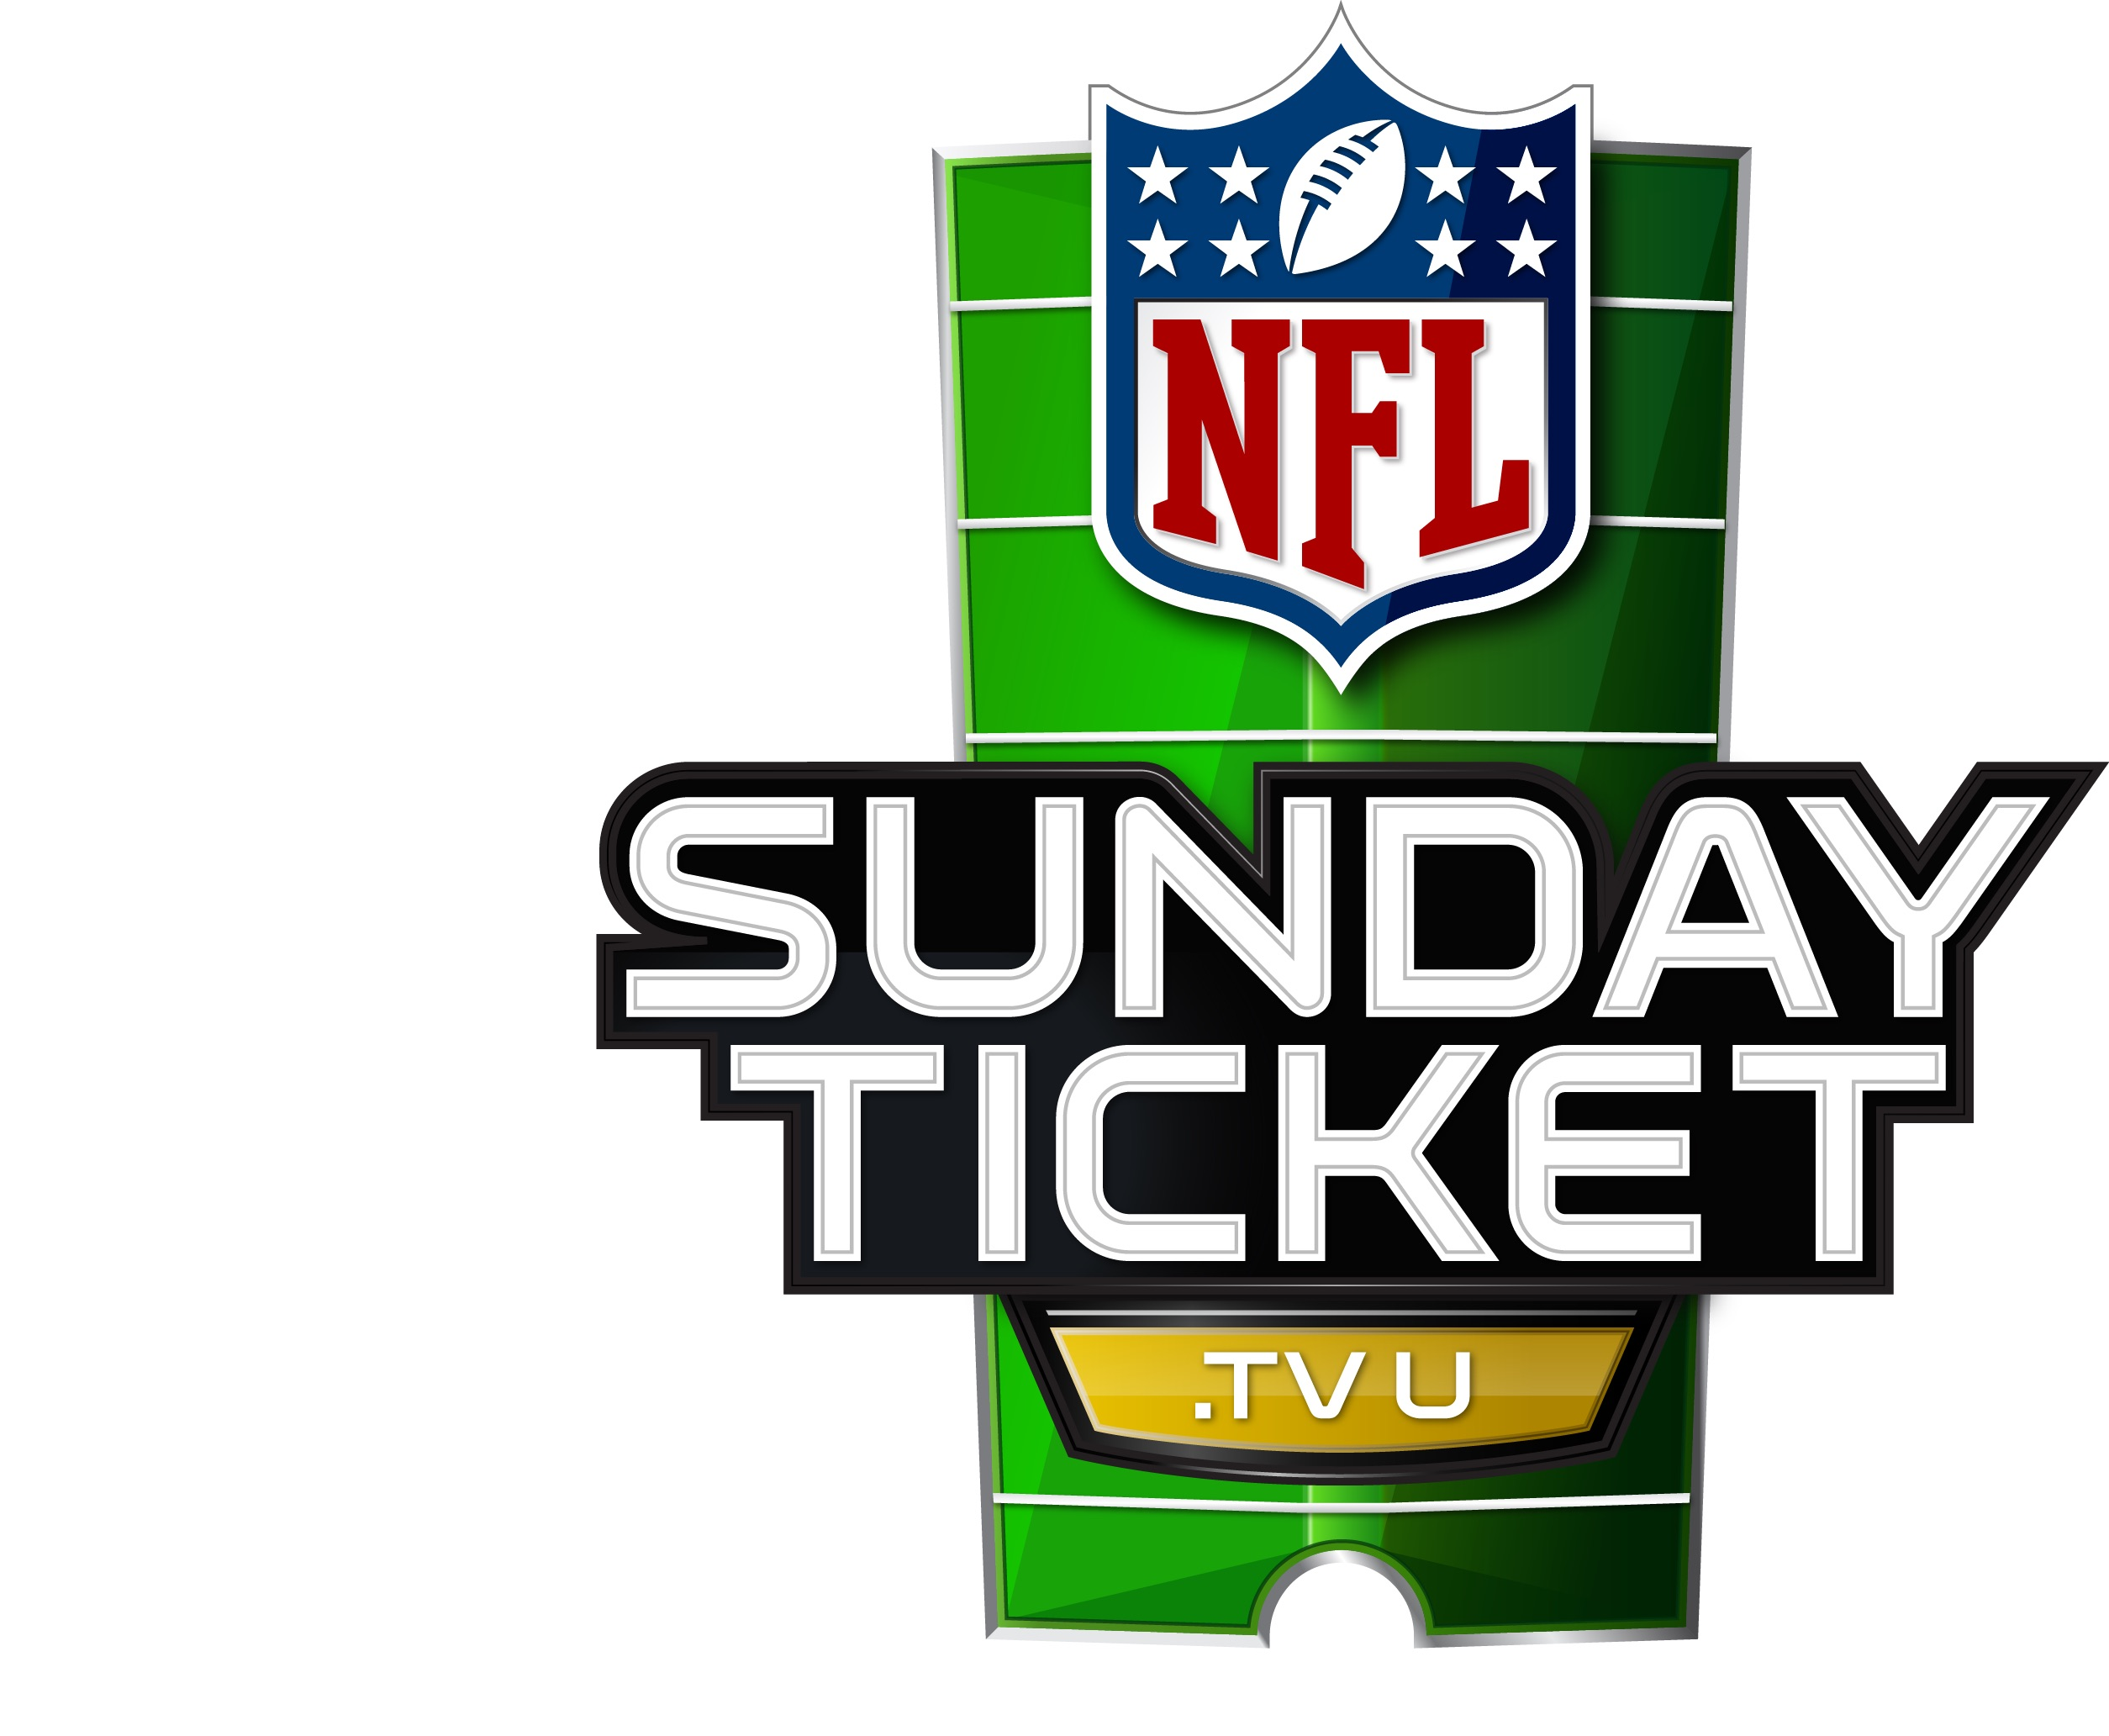 DirecTV raises prices on NFL Sunday Ticket package for 2018 season